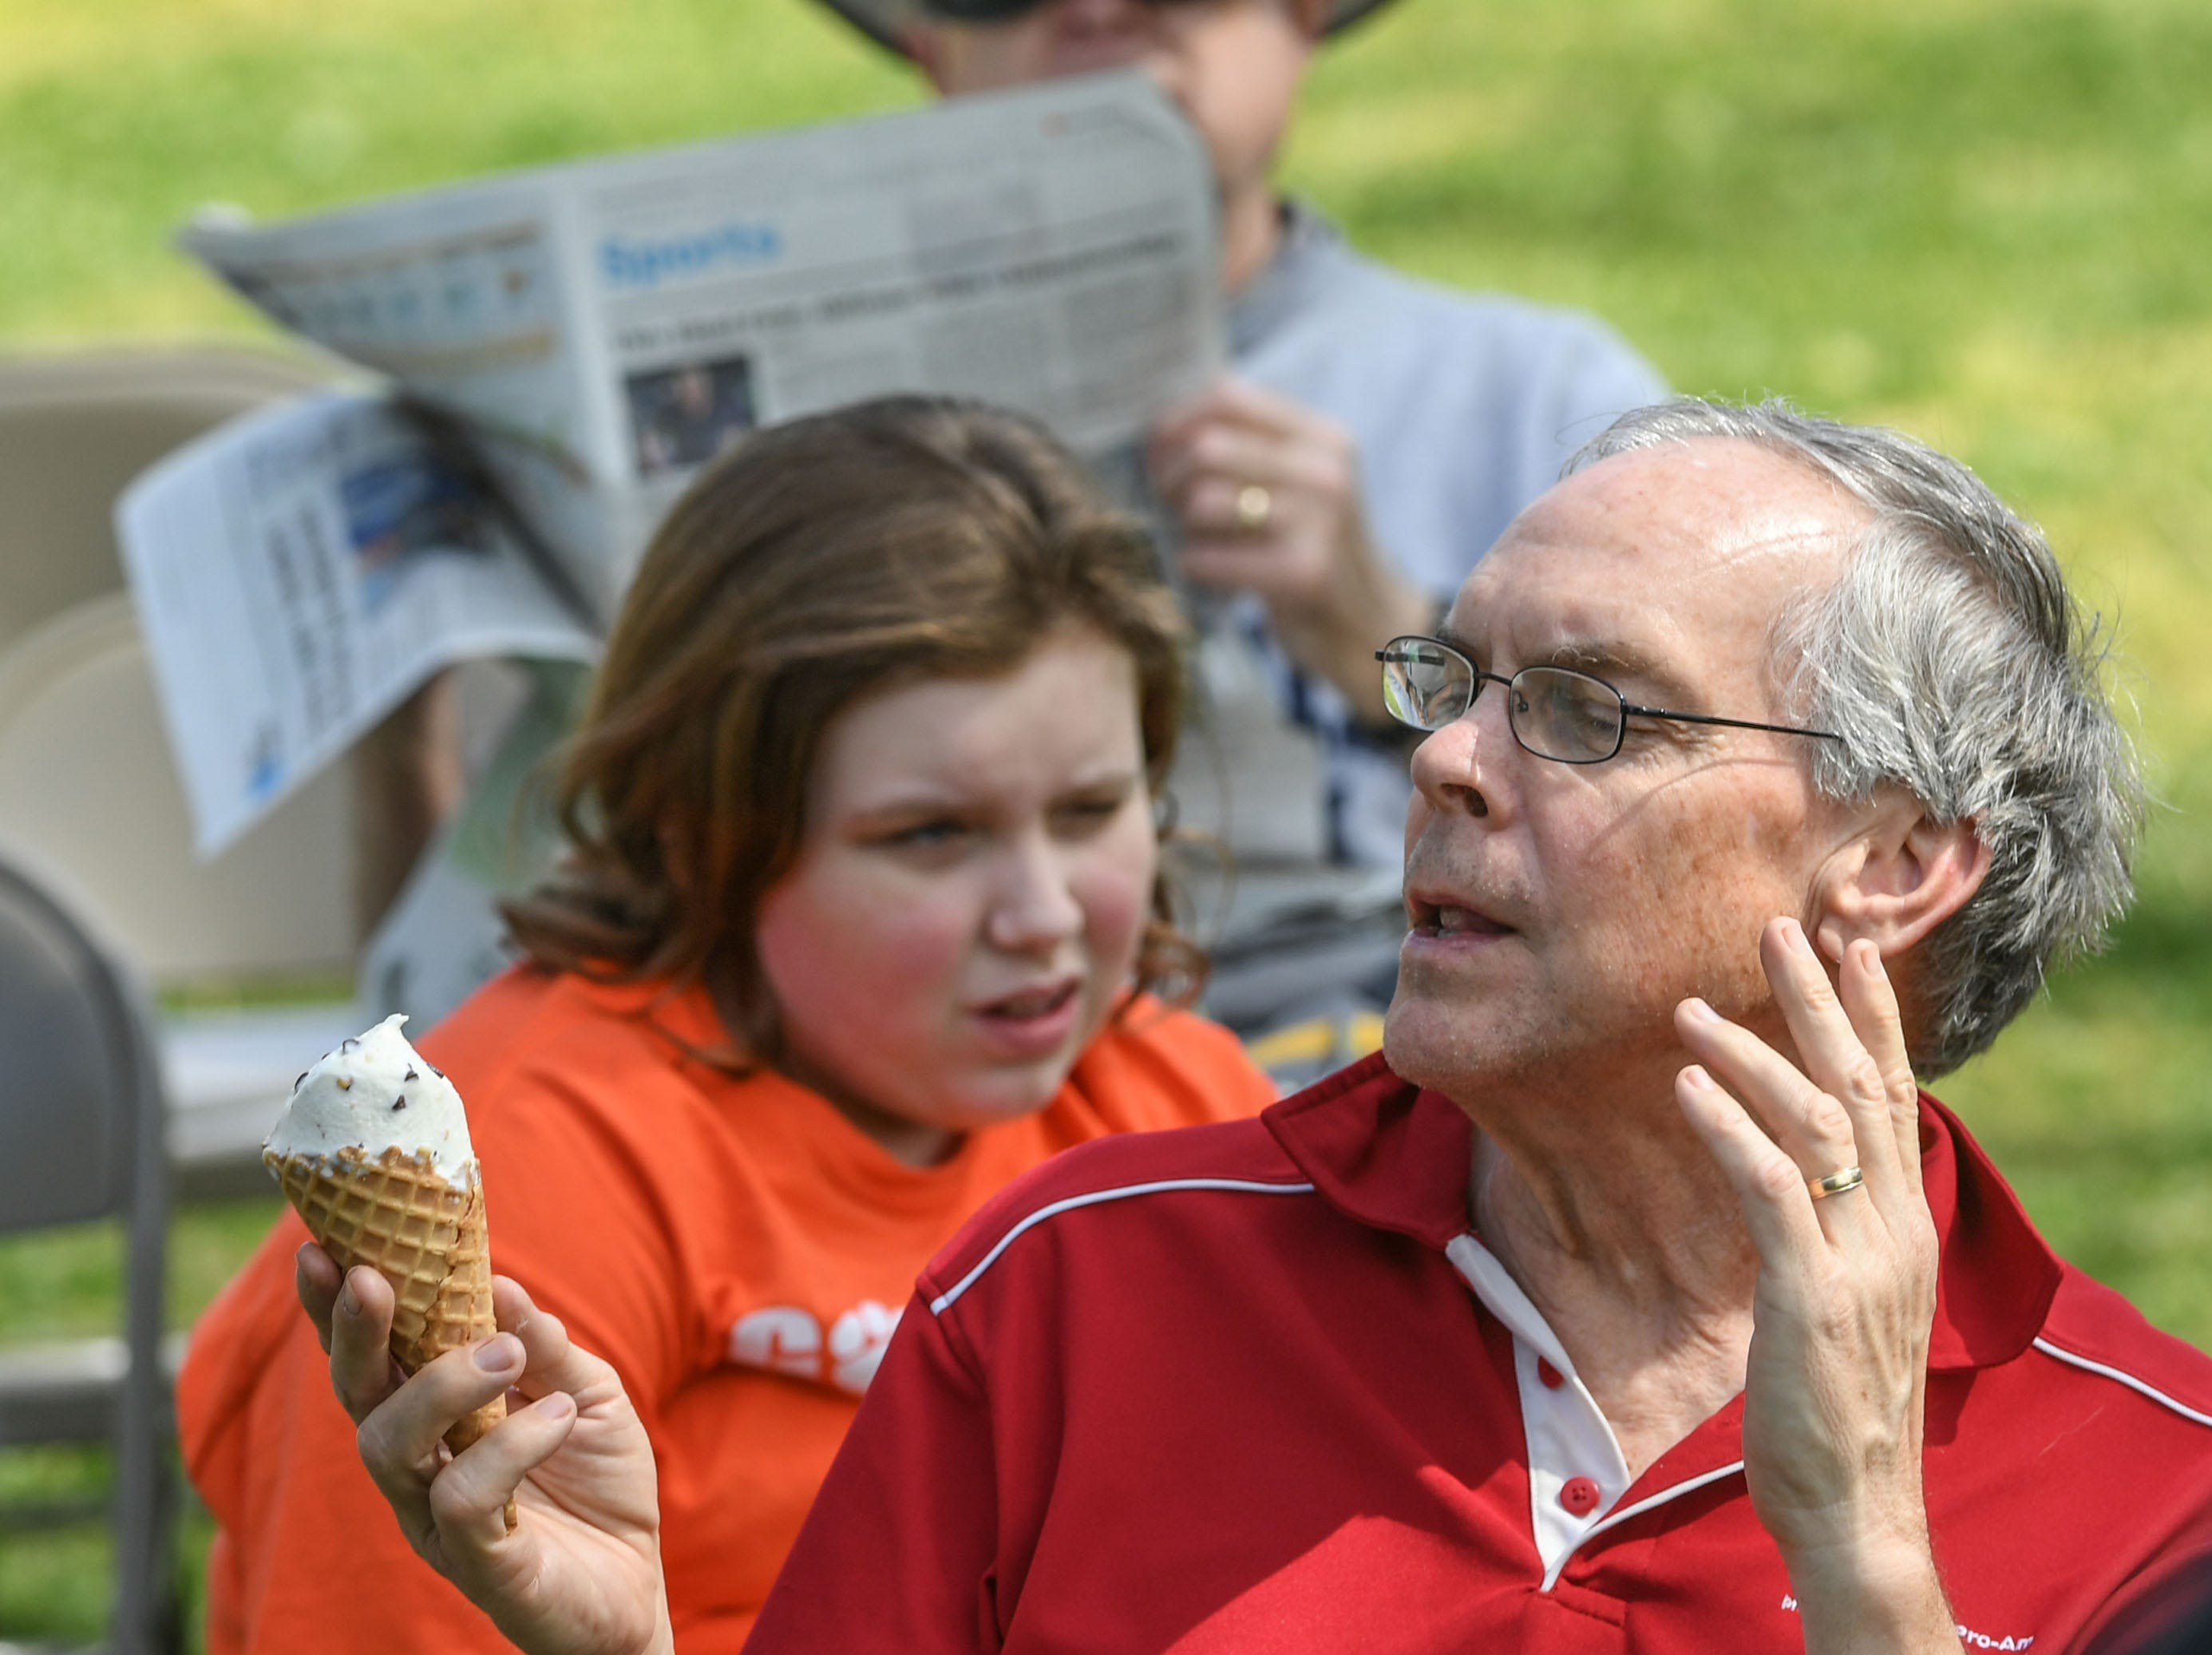 John Trice of Seneca eats an ice cream cone waiting for bluegrass band Conservation Theory to begin during the Spring Jubilee in Historic Pendleton Saturday.